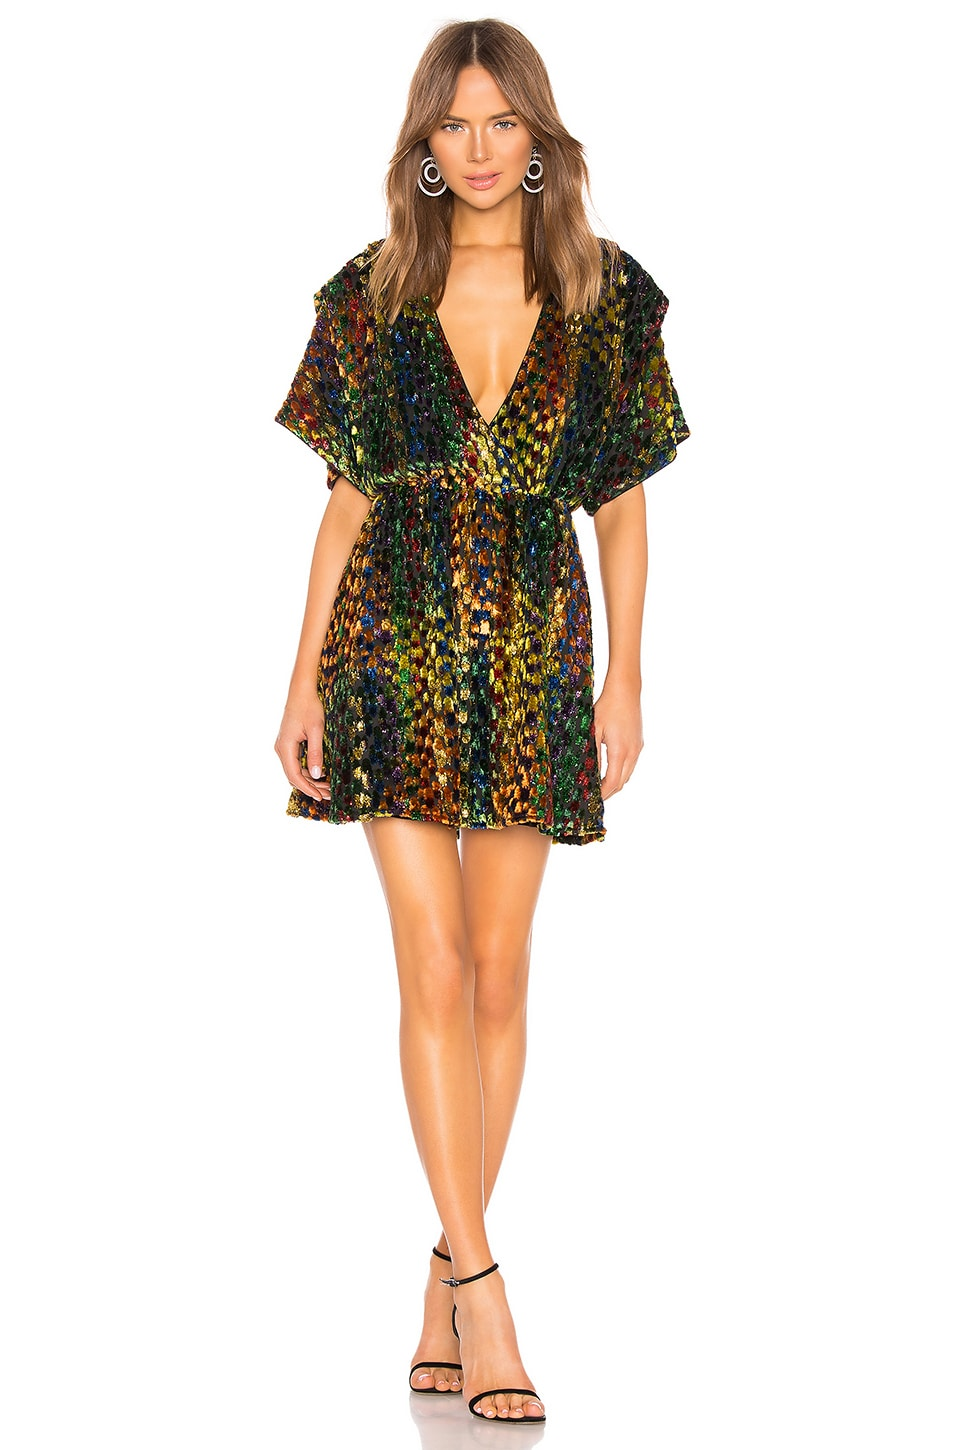 X by NBD Dolliah Mini Dress in Rainbow